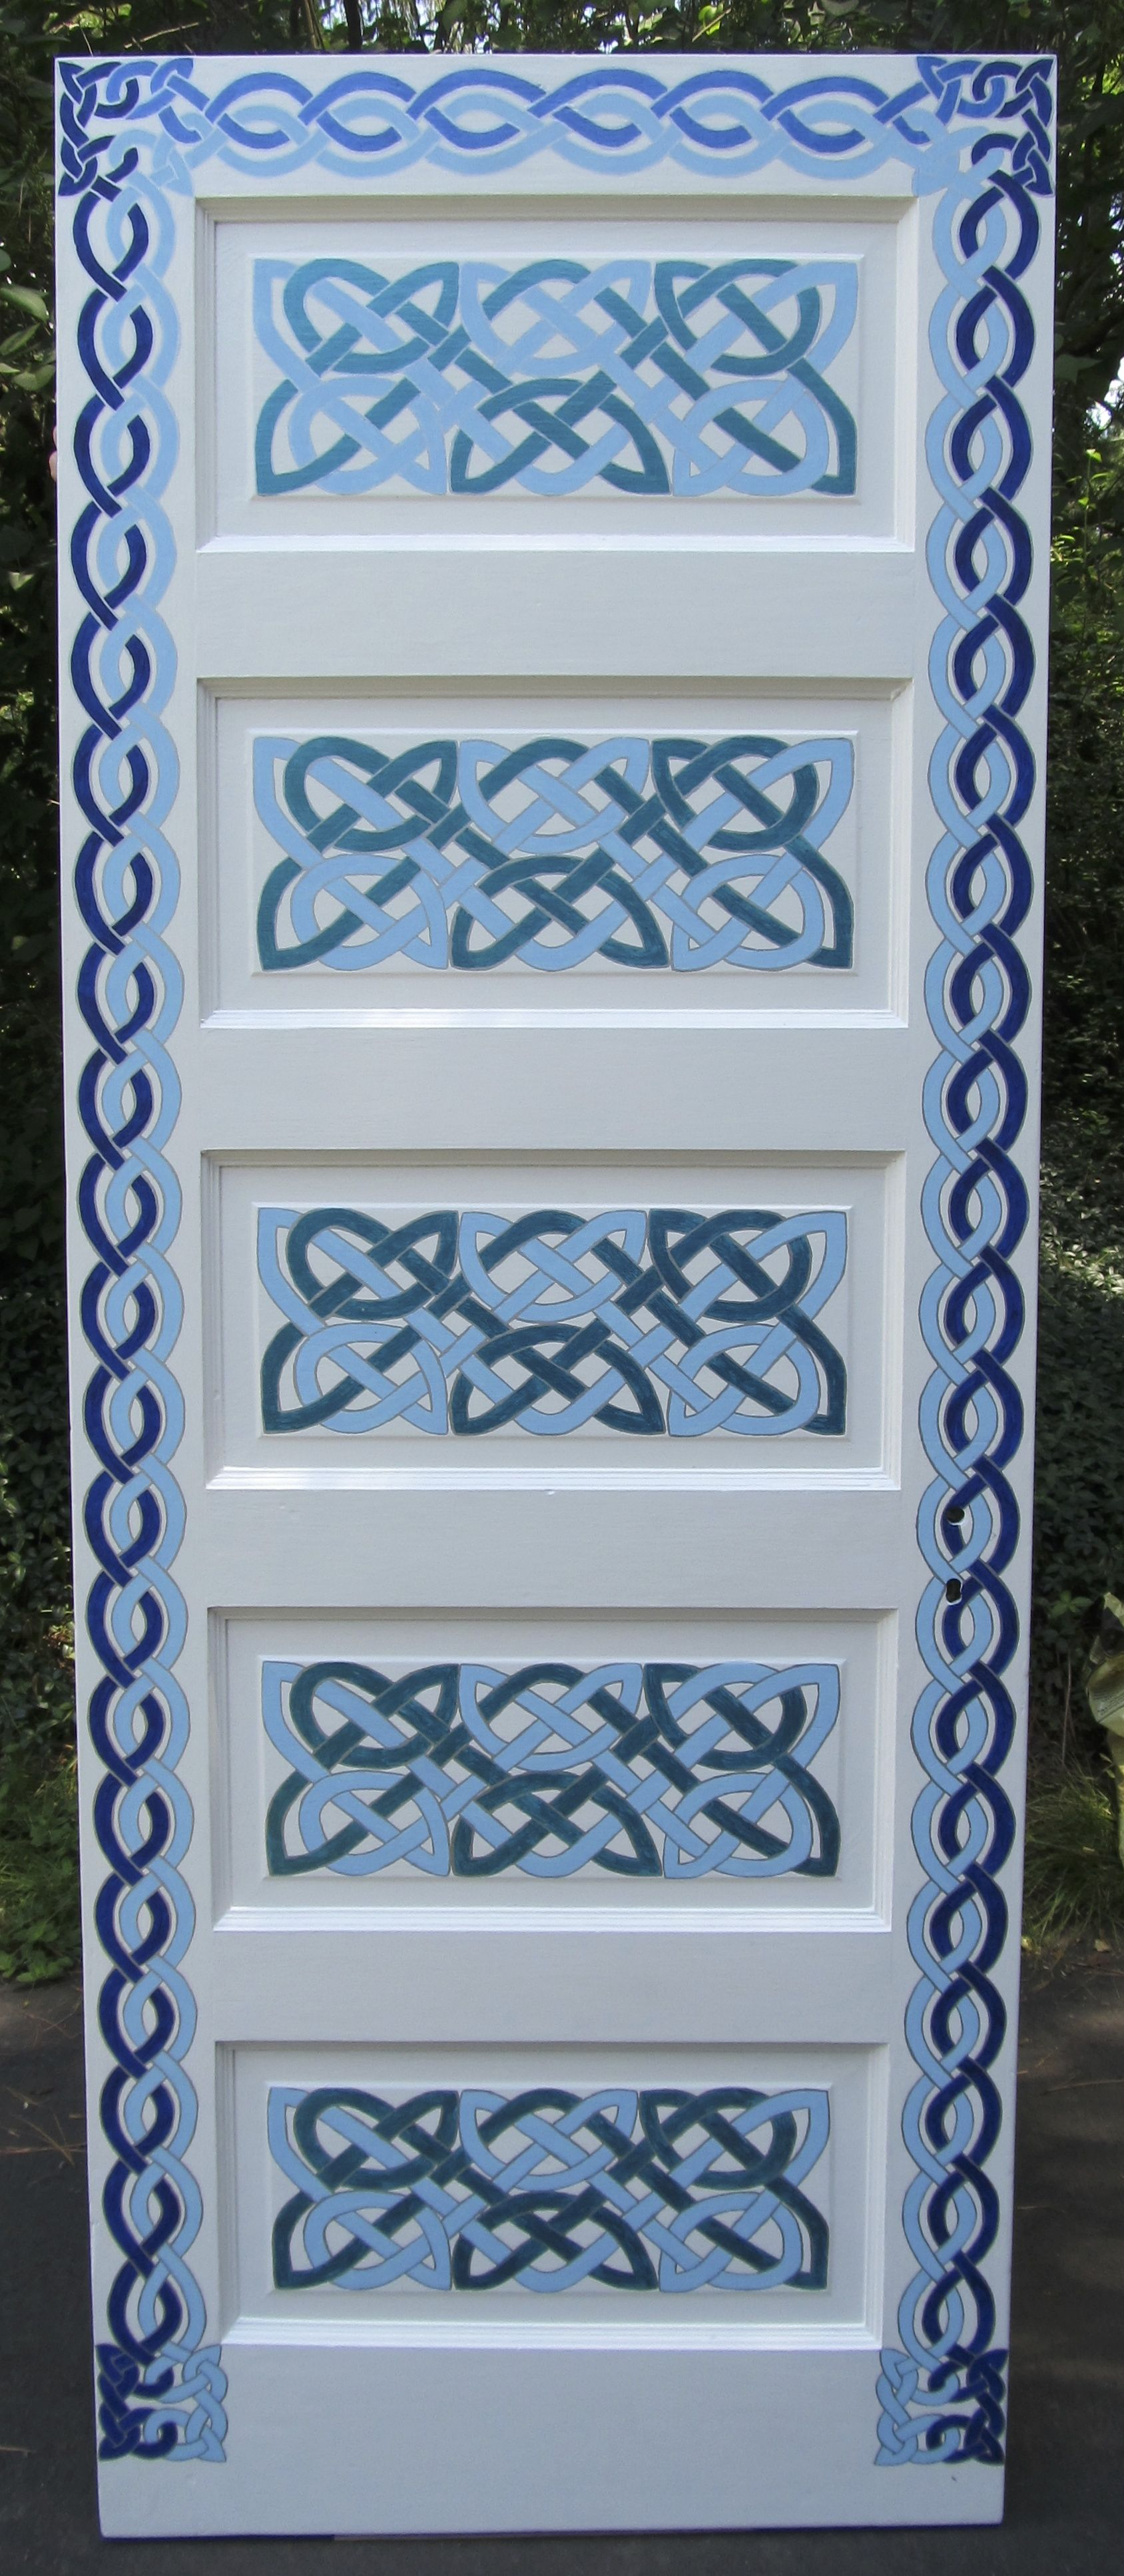 Celtic Knot Door